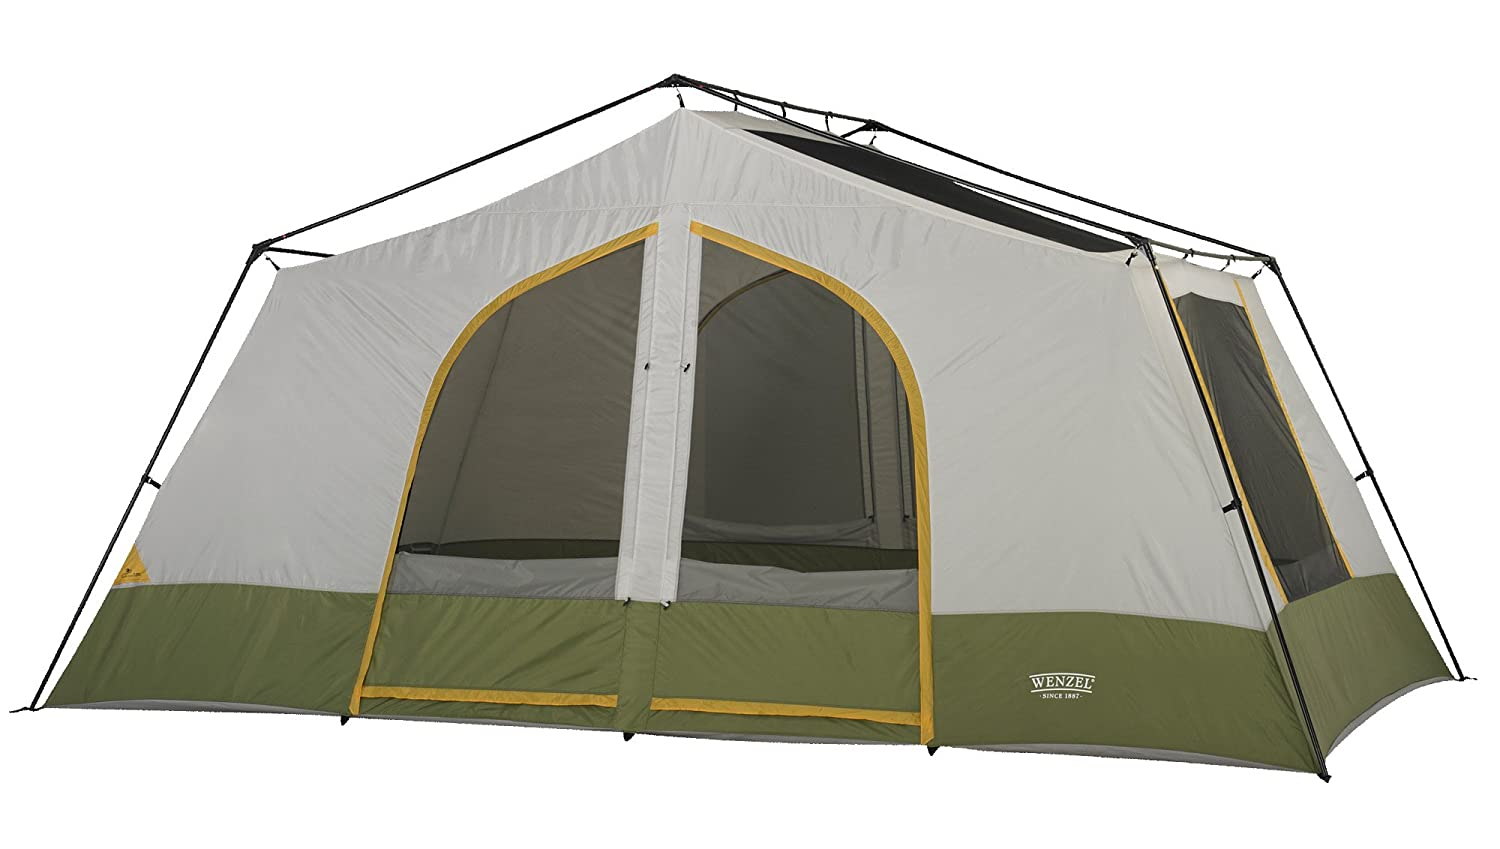 Amazon.com  Wenzel Vacation Lodge Tent - 7 Person  Family Tents  Sports u0026 Outdoors  sc 1 st  Amazon.com & Amazon.com : Wenzel Vacation Lodge Tent - 7 Person : Family Tents ...